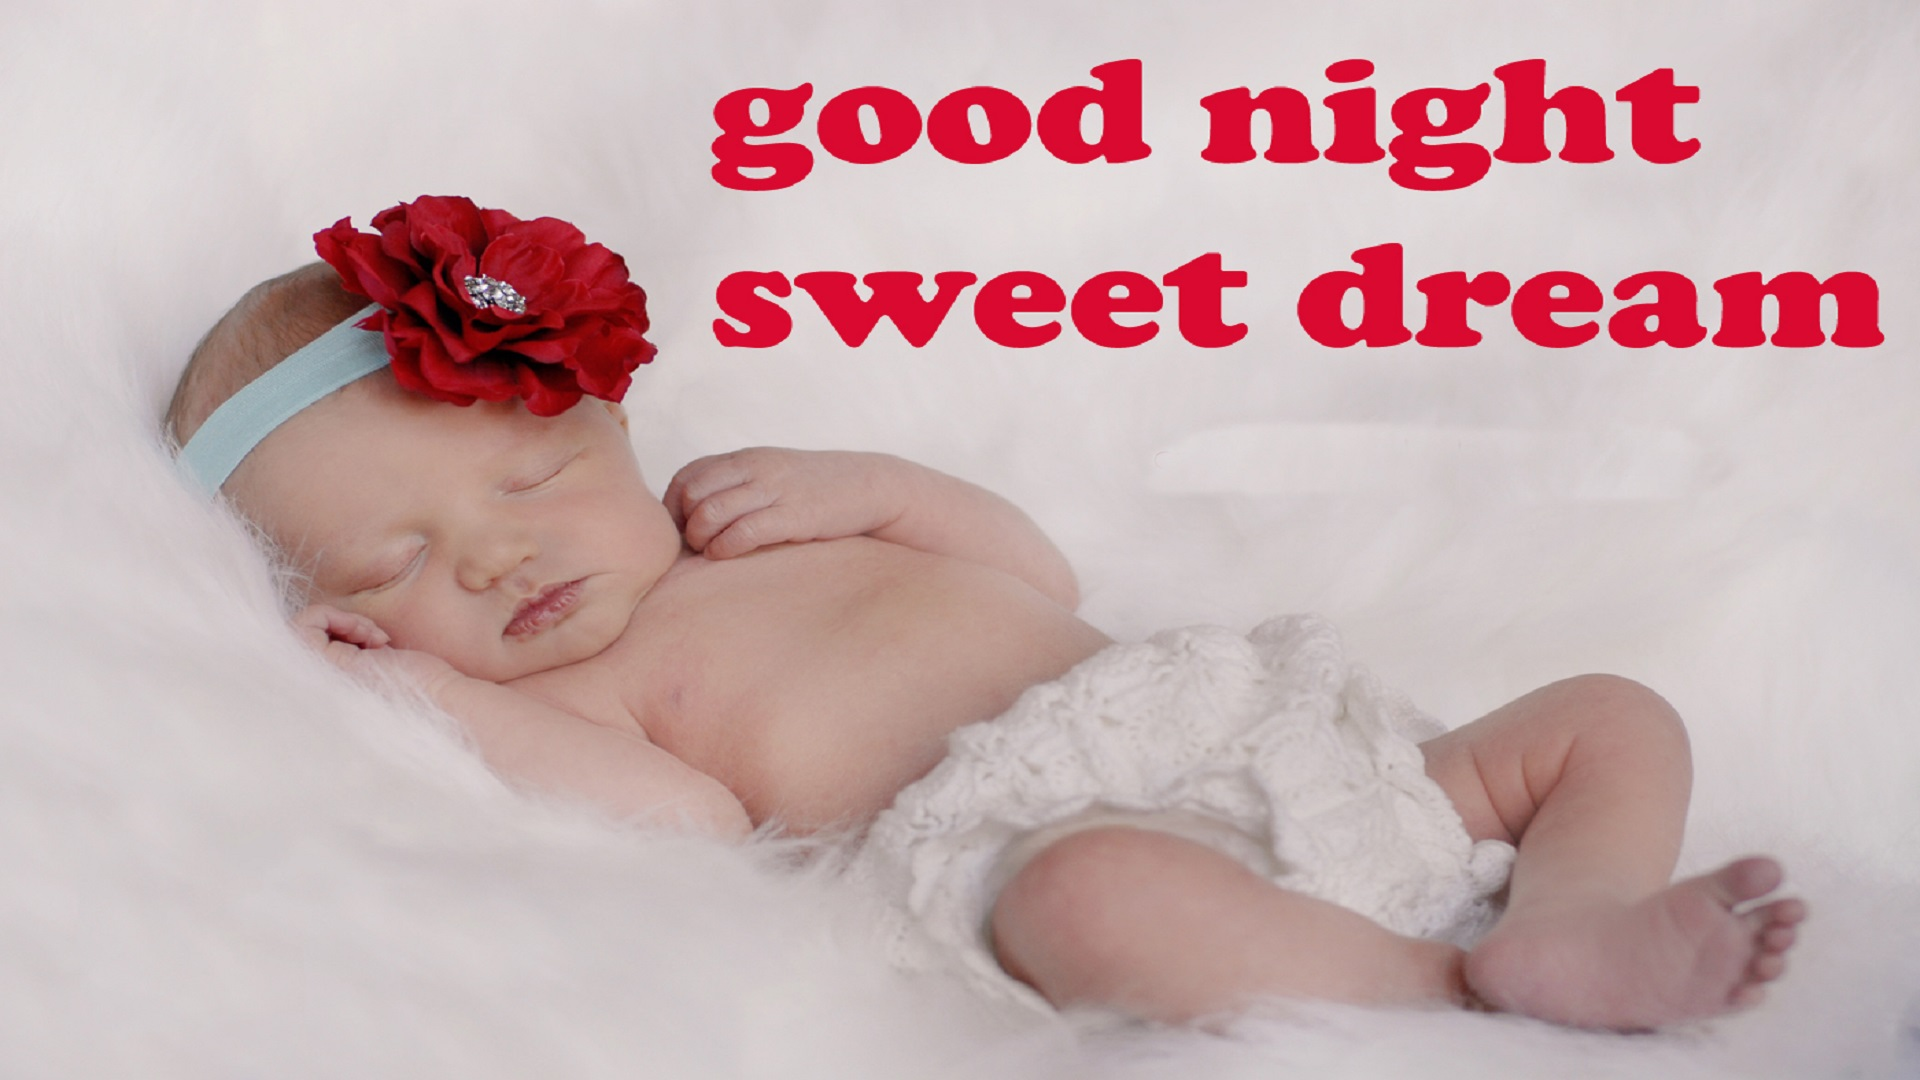 goodnightwithcutebabyhdwallpapersfree hd wallpaper